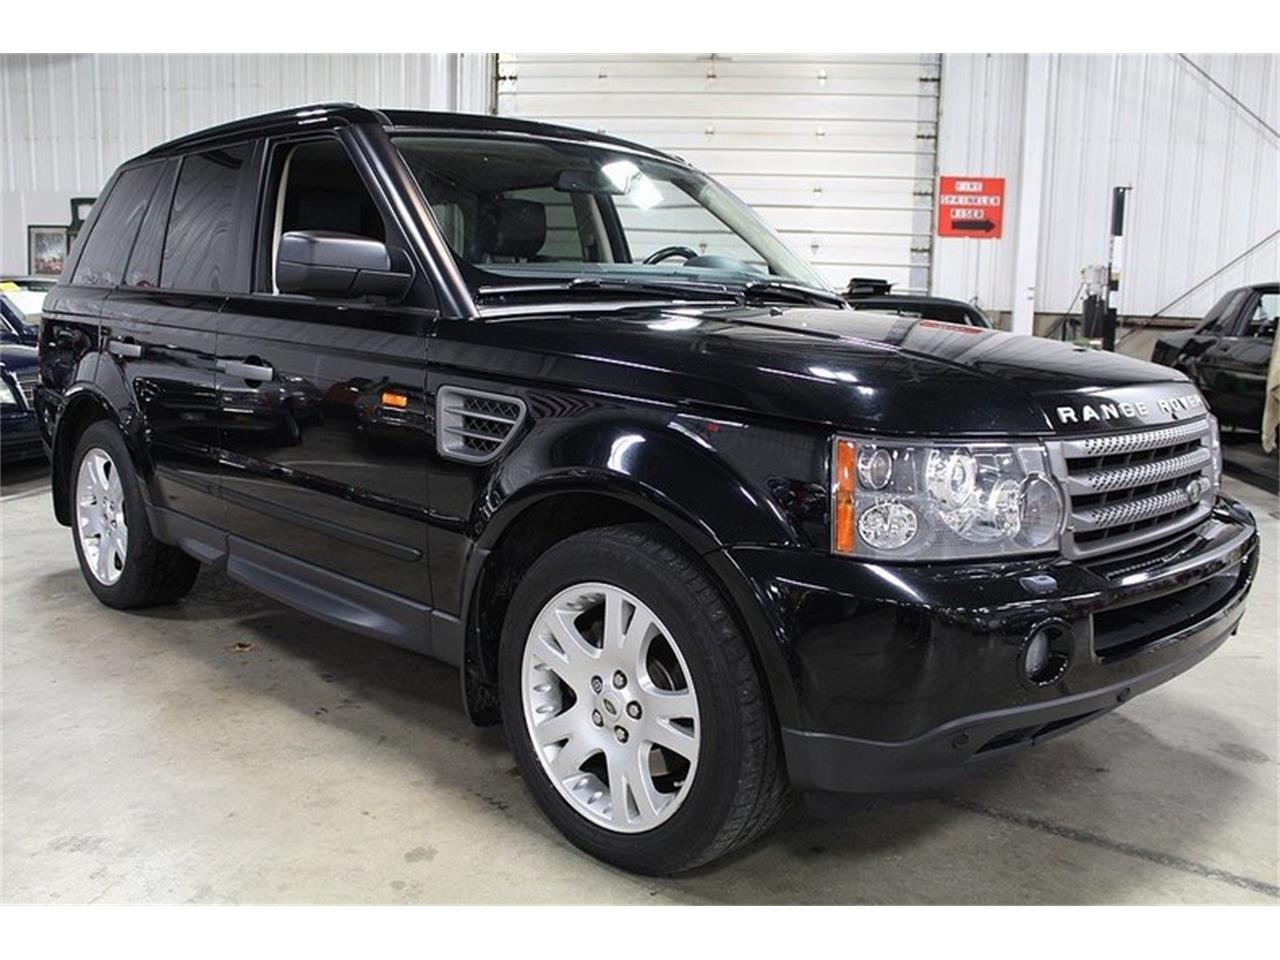 Large Picture of 2006 Range Rover Sport located in Michigan - $12,900.00 Offered by GR Auto Gallery - MGKZ